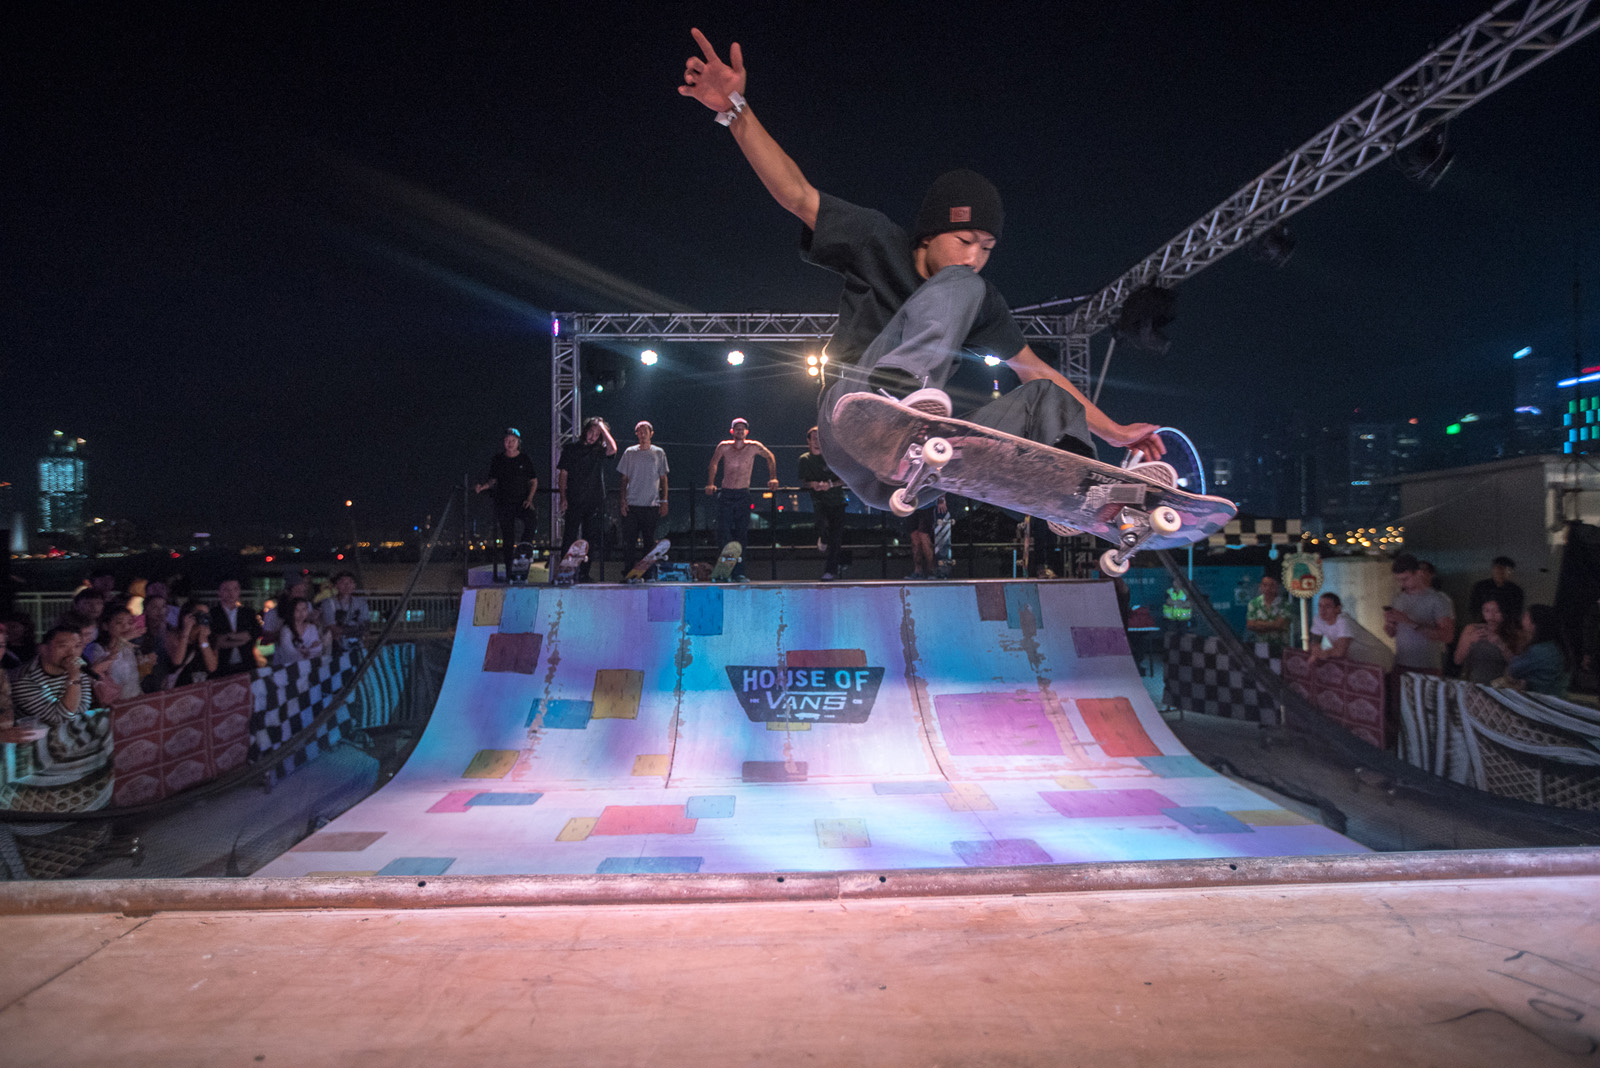 HOUSE OF VANS ASIA TOUR - SKATE TEAM RECAP